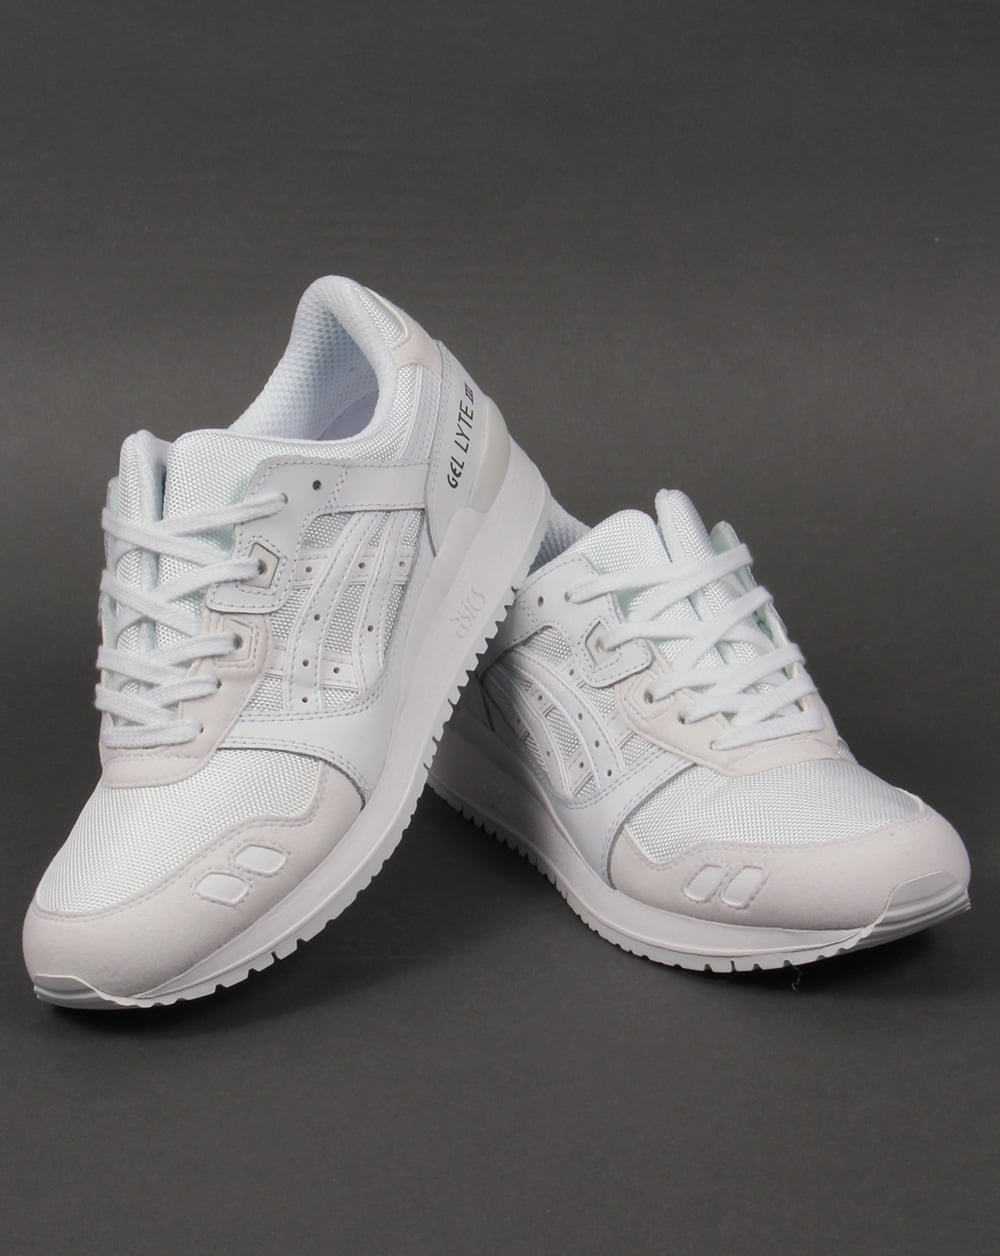 Asics Gel Lyte III Suede Trainers White White 6cdd55e75